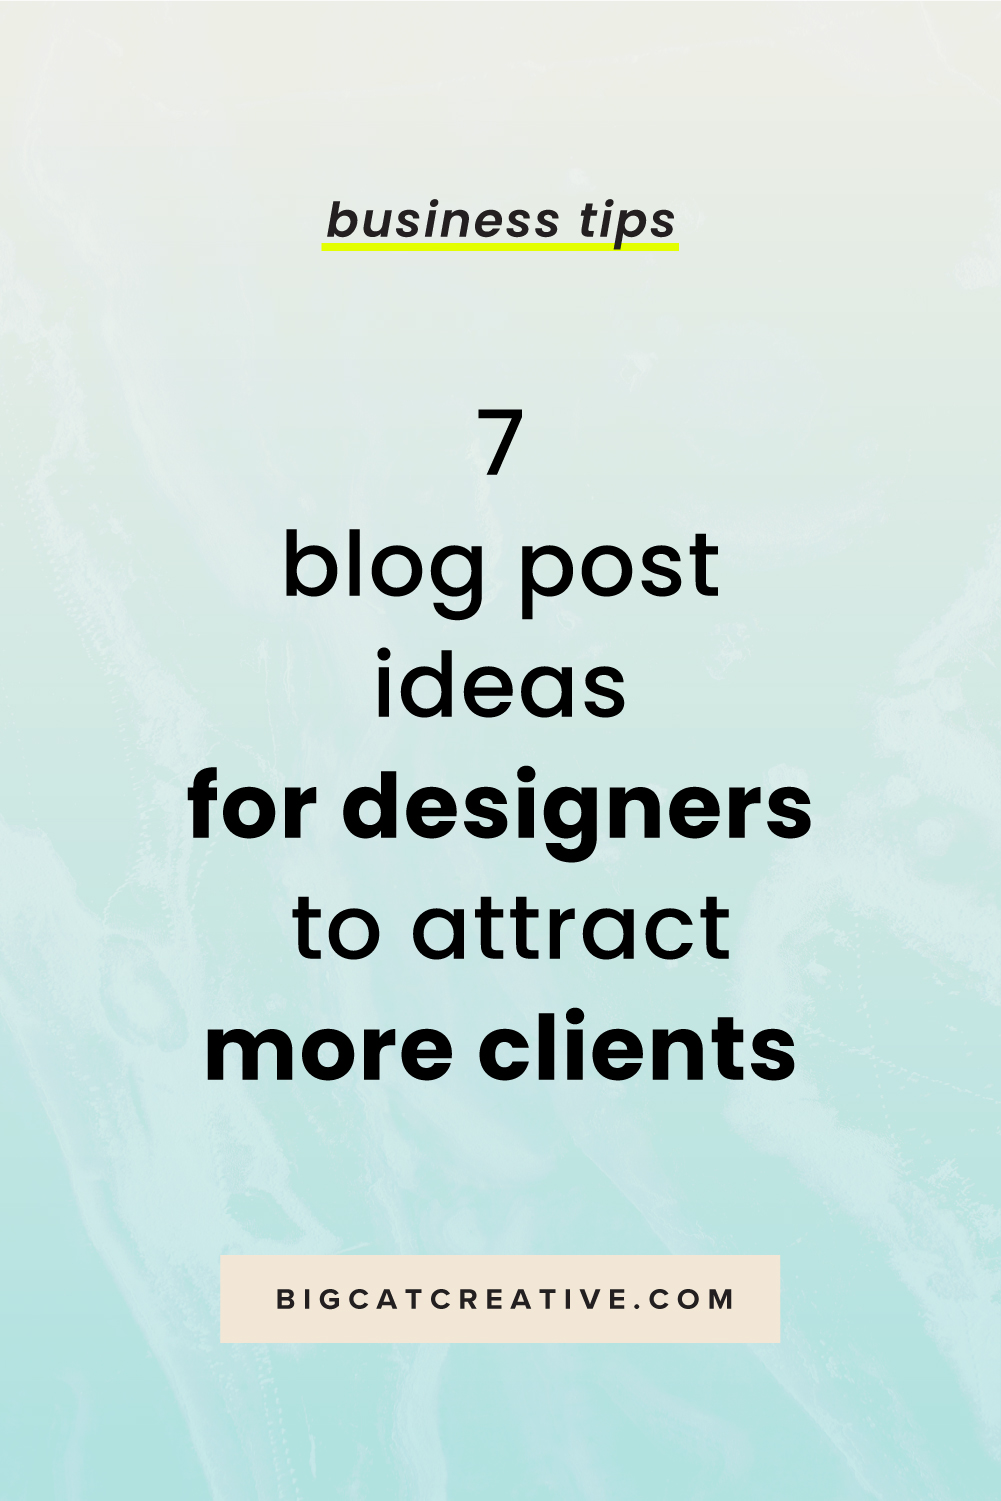 Check out these 7 blog post ideas for designers that will attract clients and customers. | Design Business Tips by Big Cat Creative | How to Blog as a Designer | Blogging for Designers | Business Tips for Designers | Attracting More Clients as a Designer